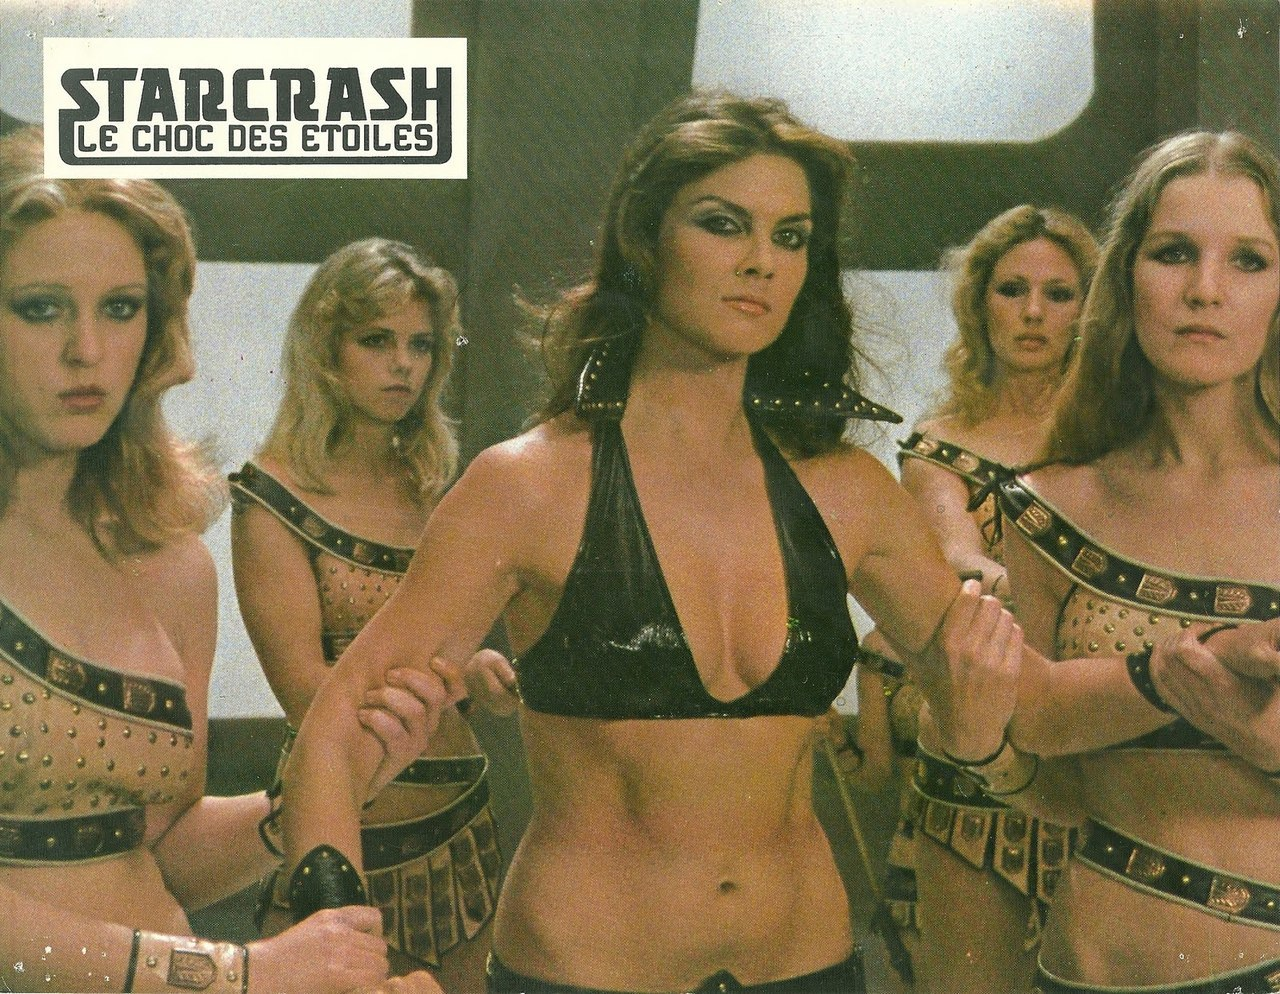 Starcrash, French lobby card. 1978